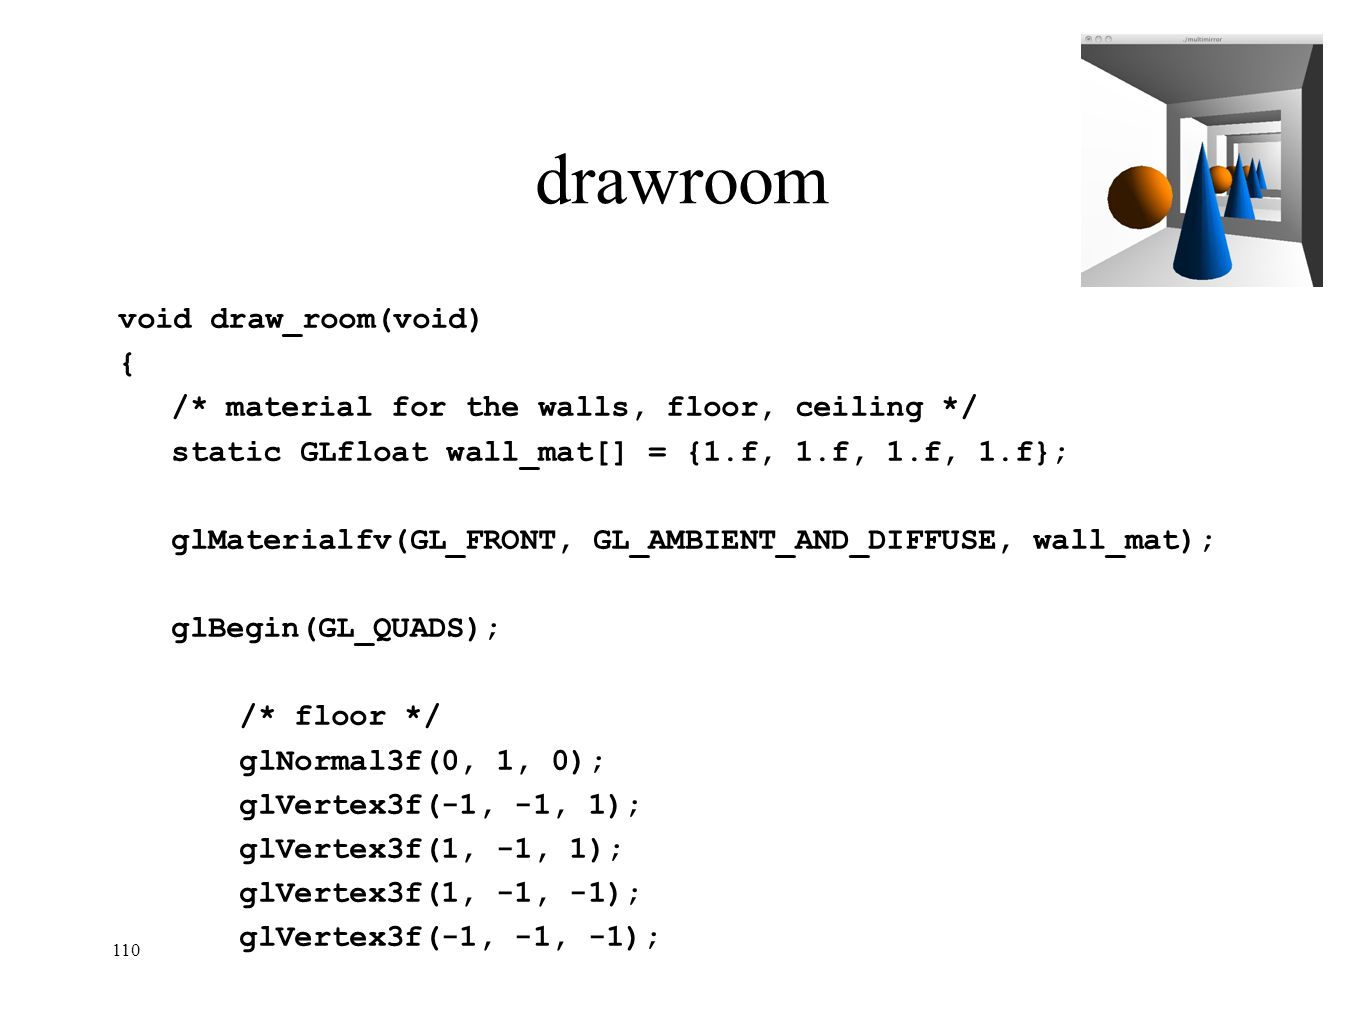 drawroom void draw_room(void) {